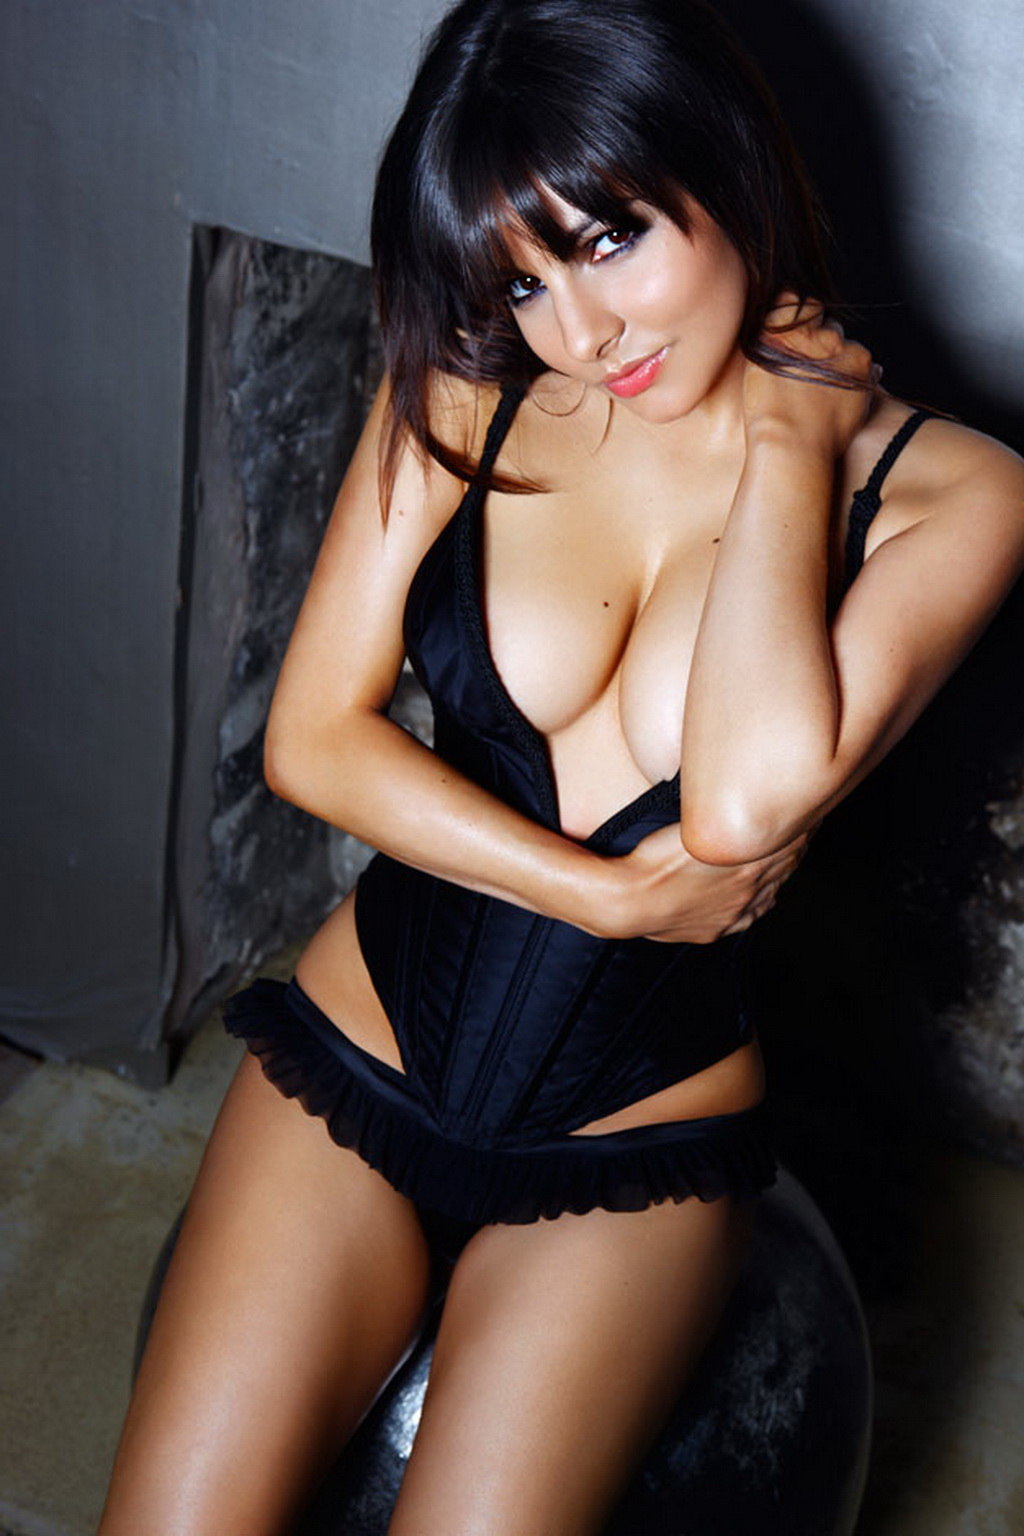 Roxanne Pallett in sexy lingerie - Loaded photoshoot outtakes